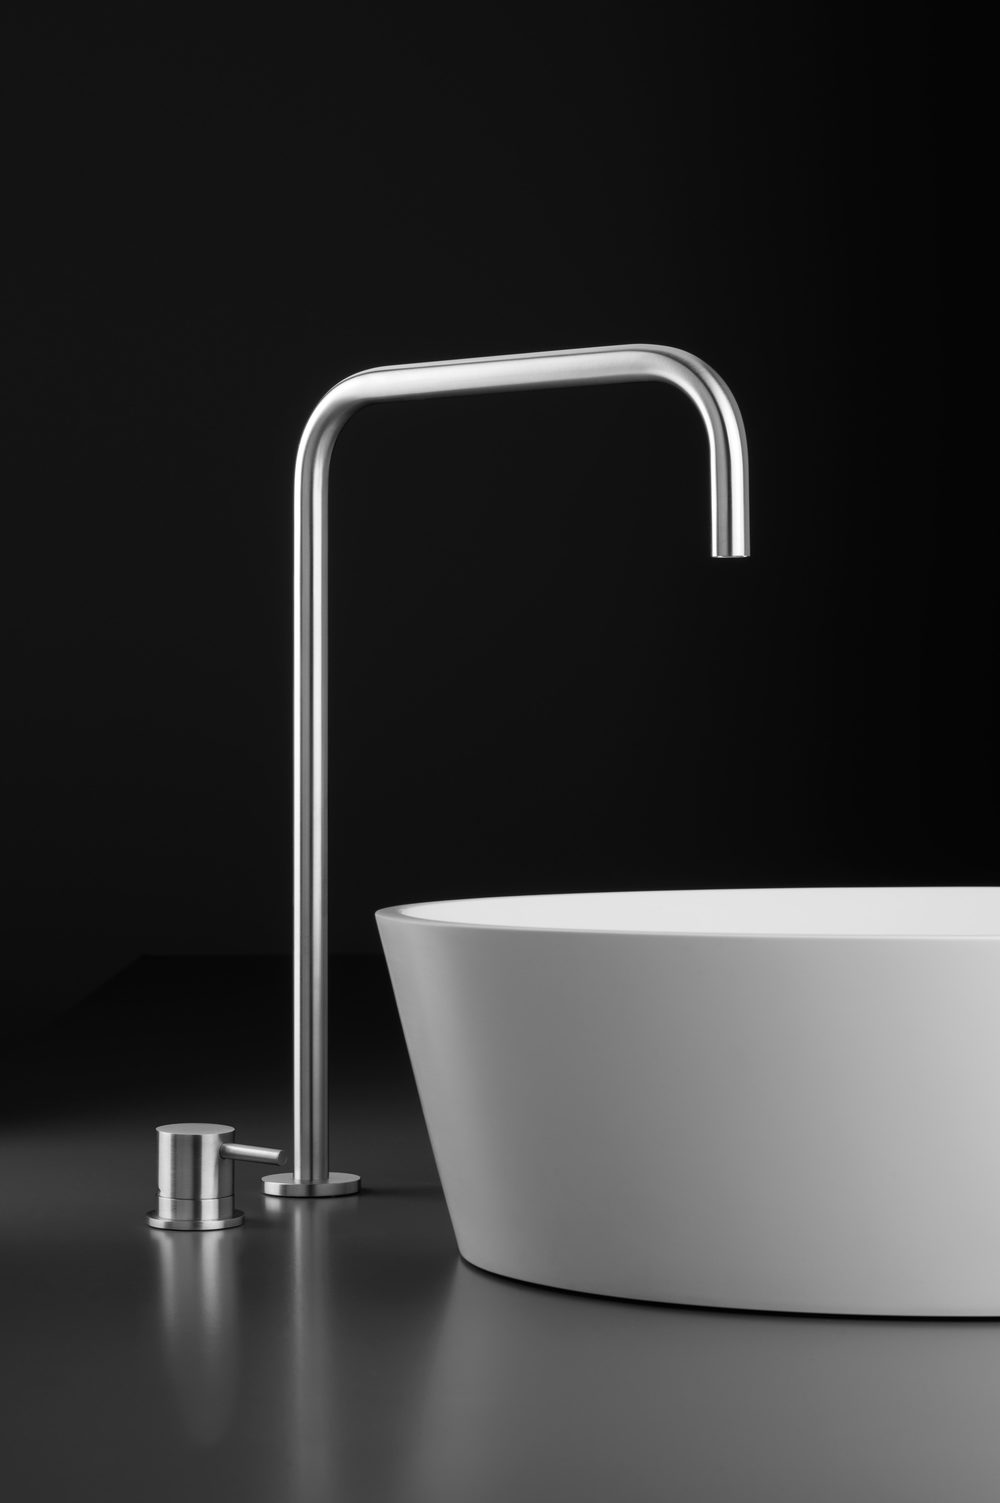 INOX Deck-Mount Basin Spout, Courtesy Blu Bathworks